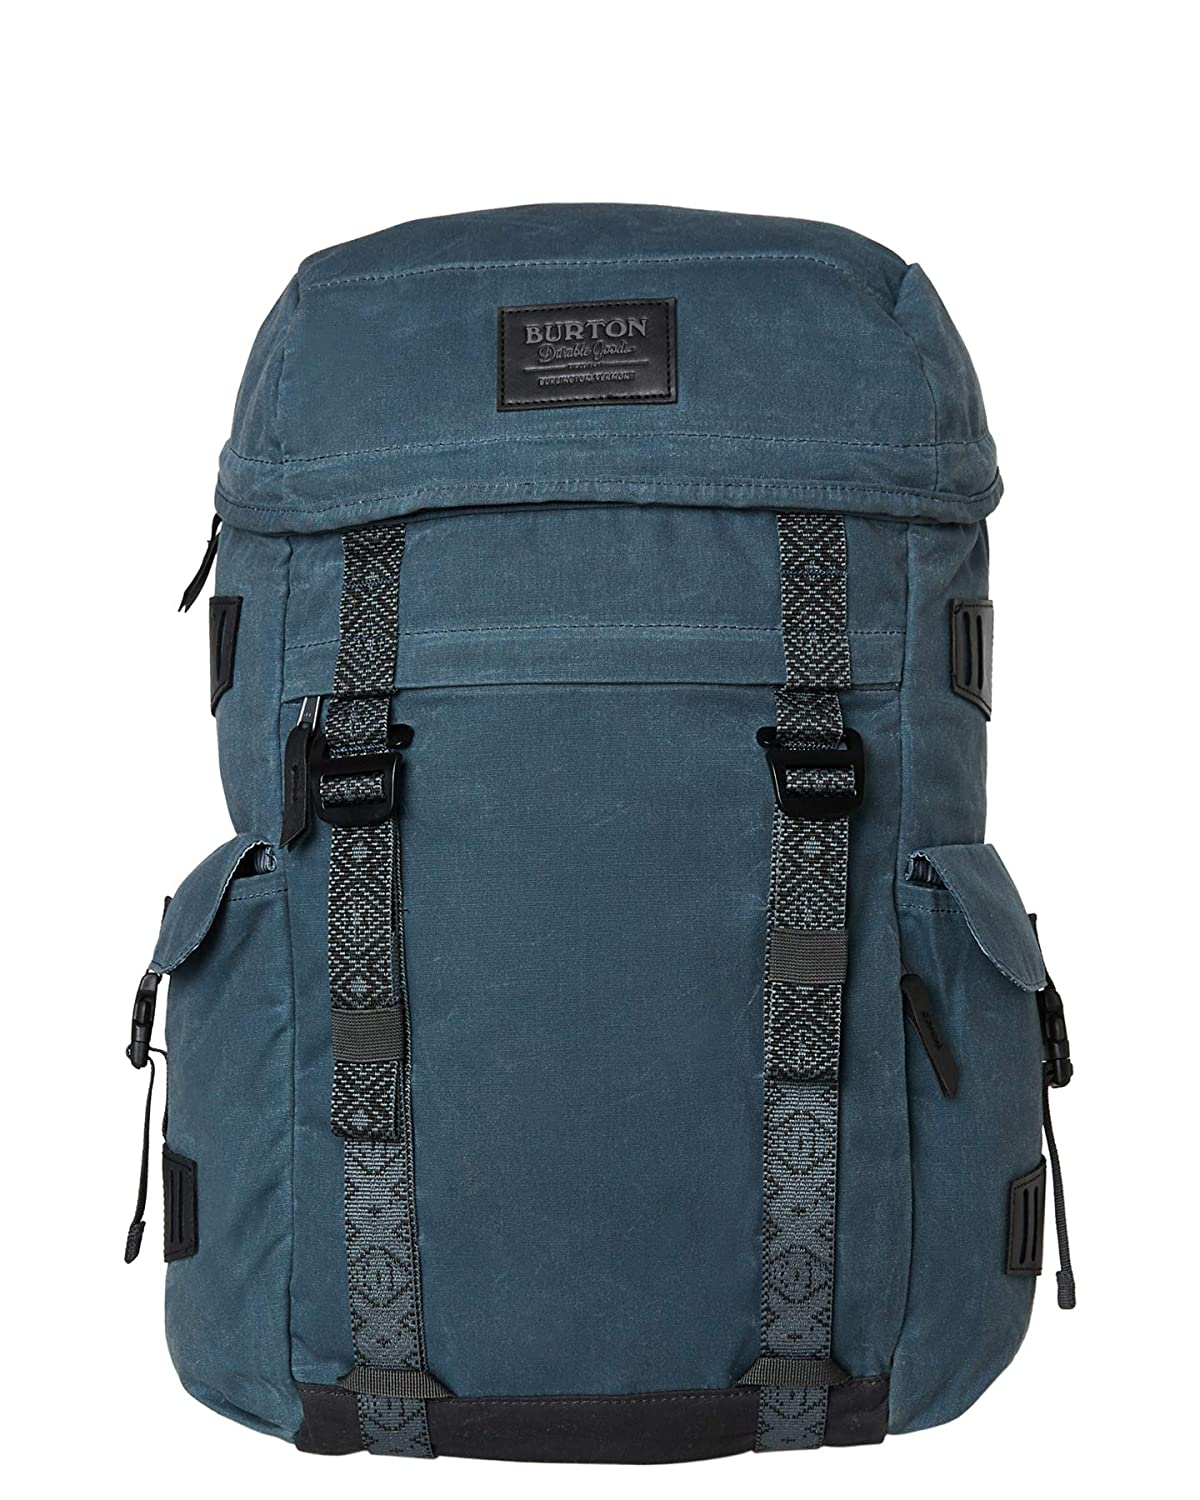 2e65cc3f8d0 Amazon.com | Burton Annex Laptop Backpack One Size Dark Slate Waxed Cnv |  Casual Daypacks